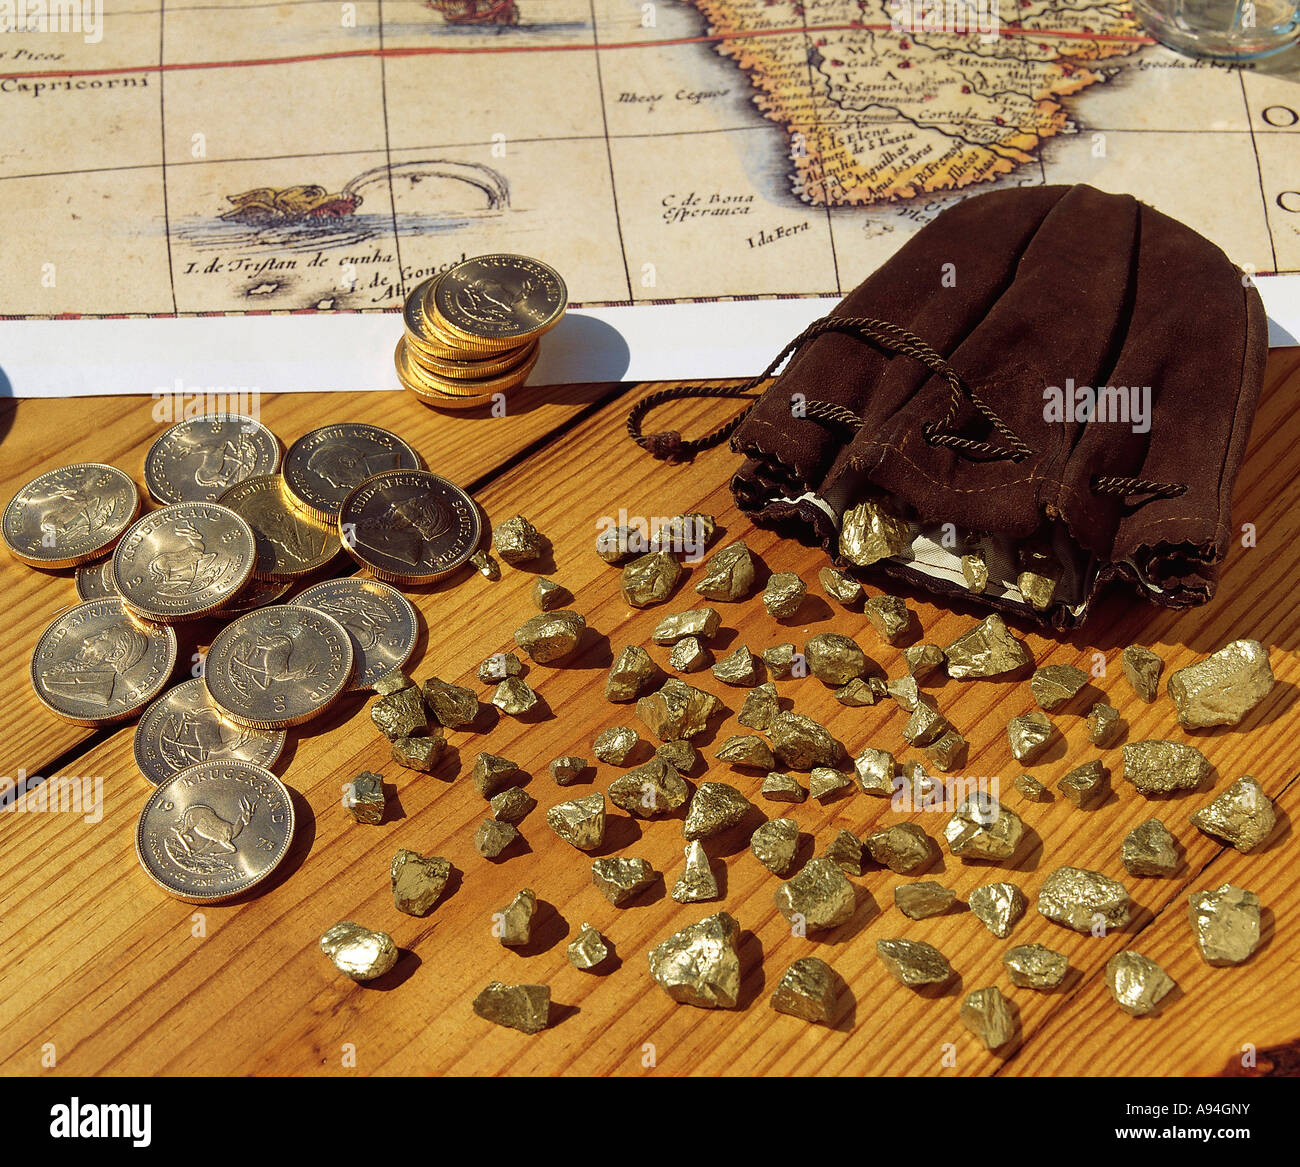 Kruger rand stock photos kruger rand stock images alamy kruger rand gold coins and gold ingots spread over a wooden table with an old map buycottarizona